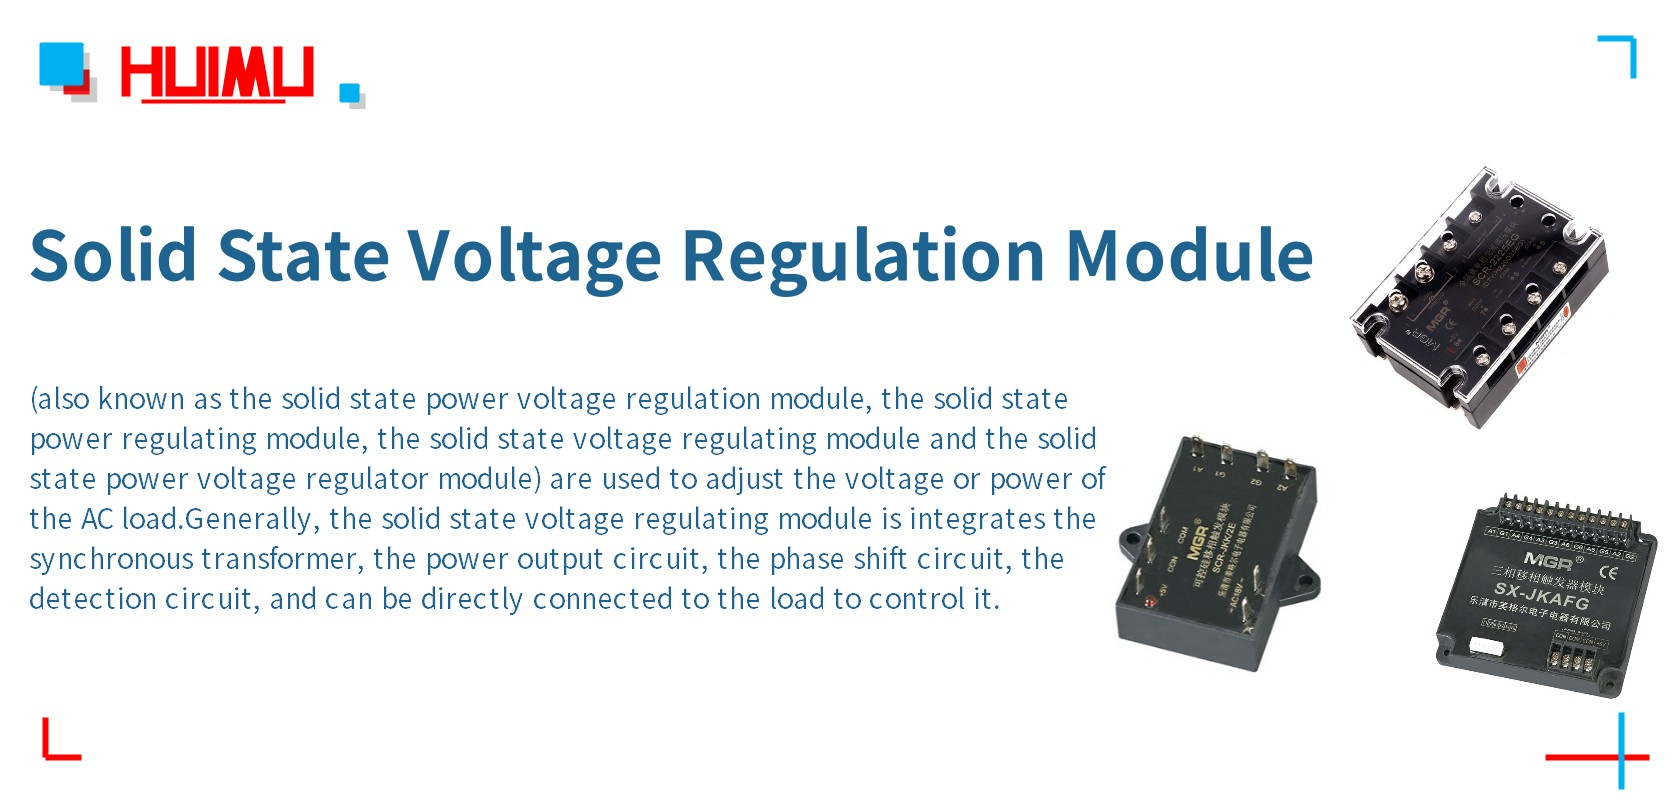 What is Solid State Voltage Regulation Module? More detail via www.@huimultd.com